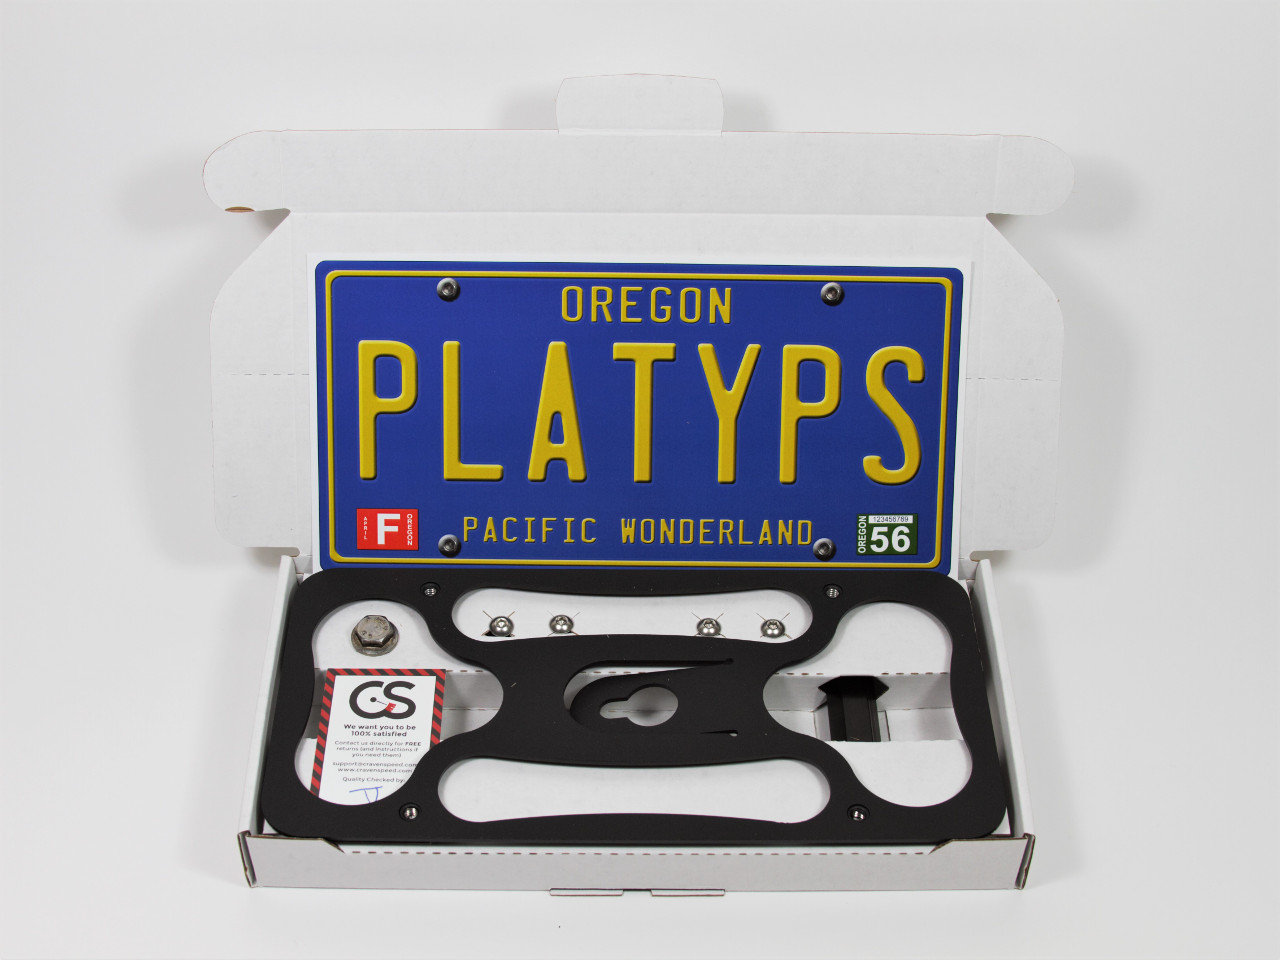 Assembled kit photo for The Platypus License Plate Mount for 2001-2006 BMW M3